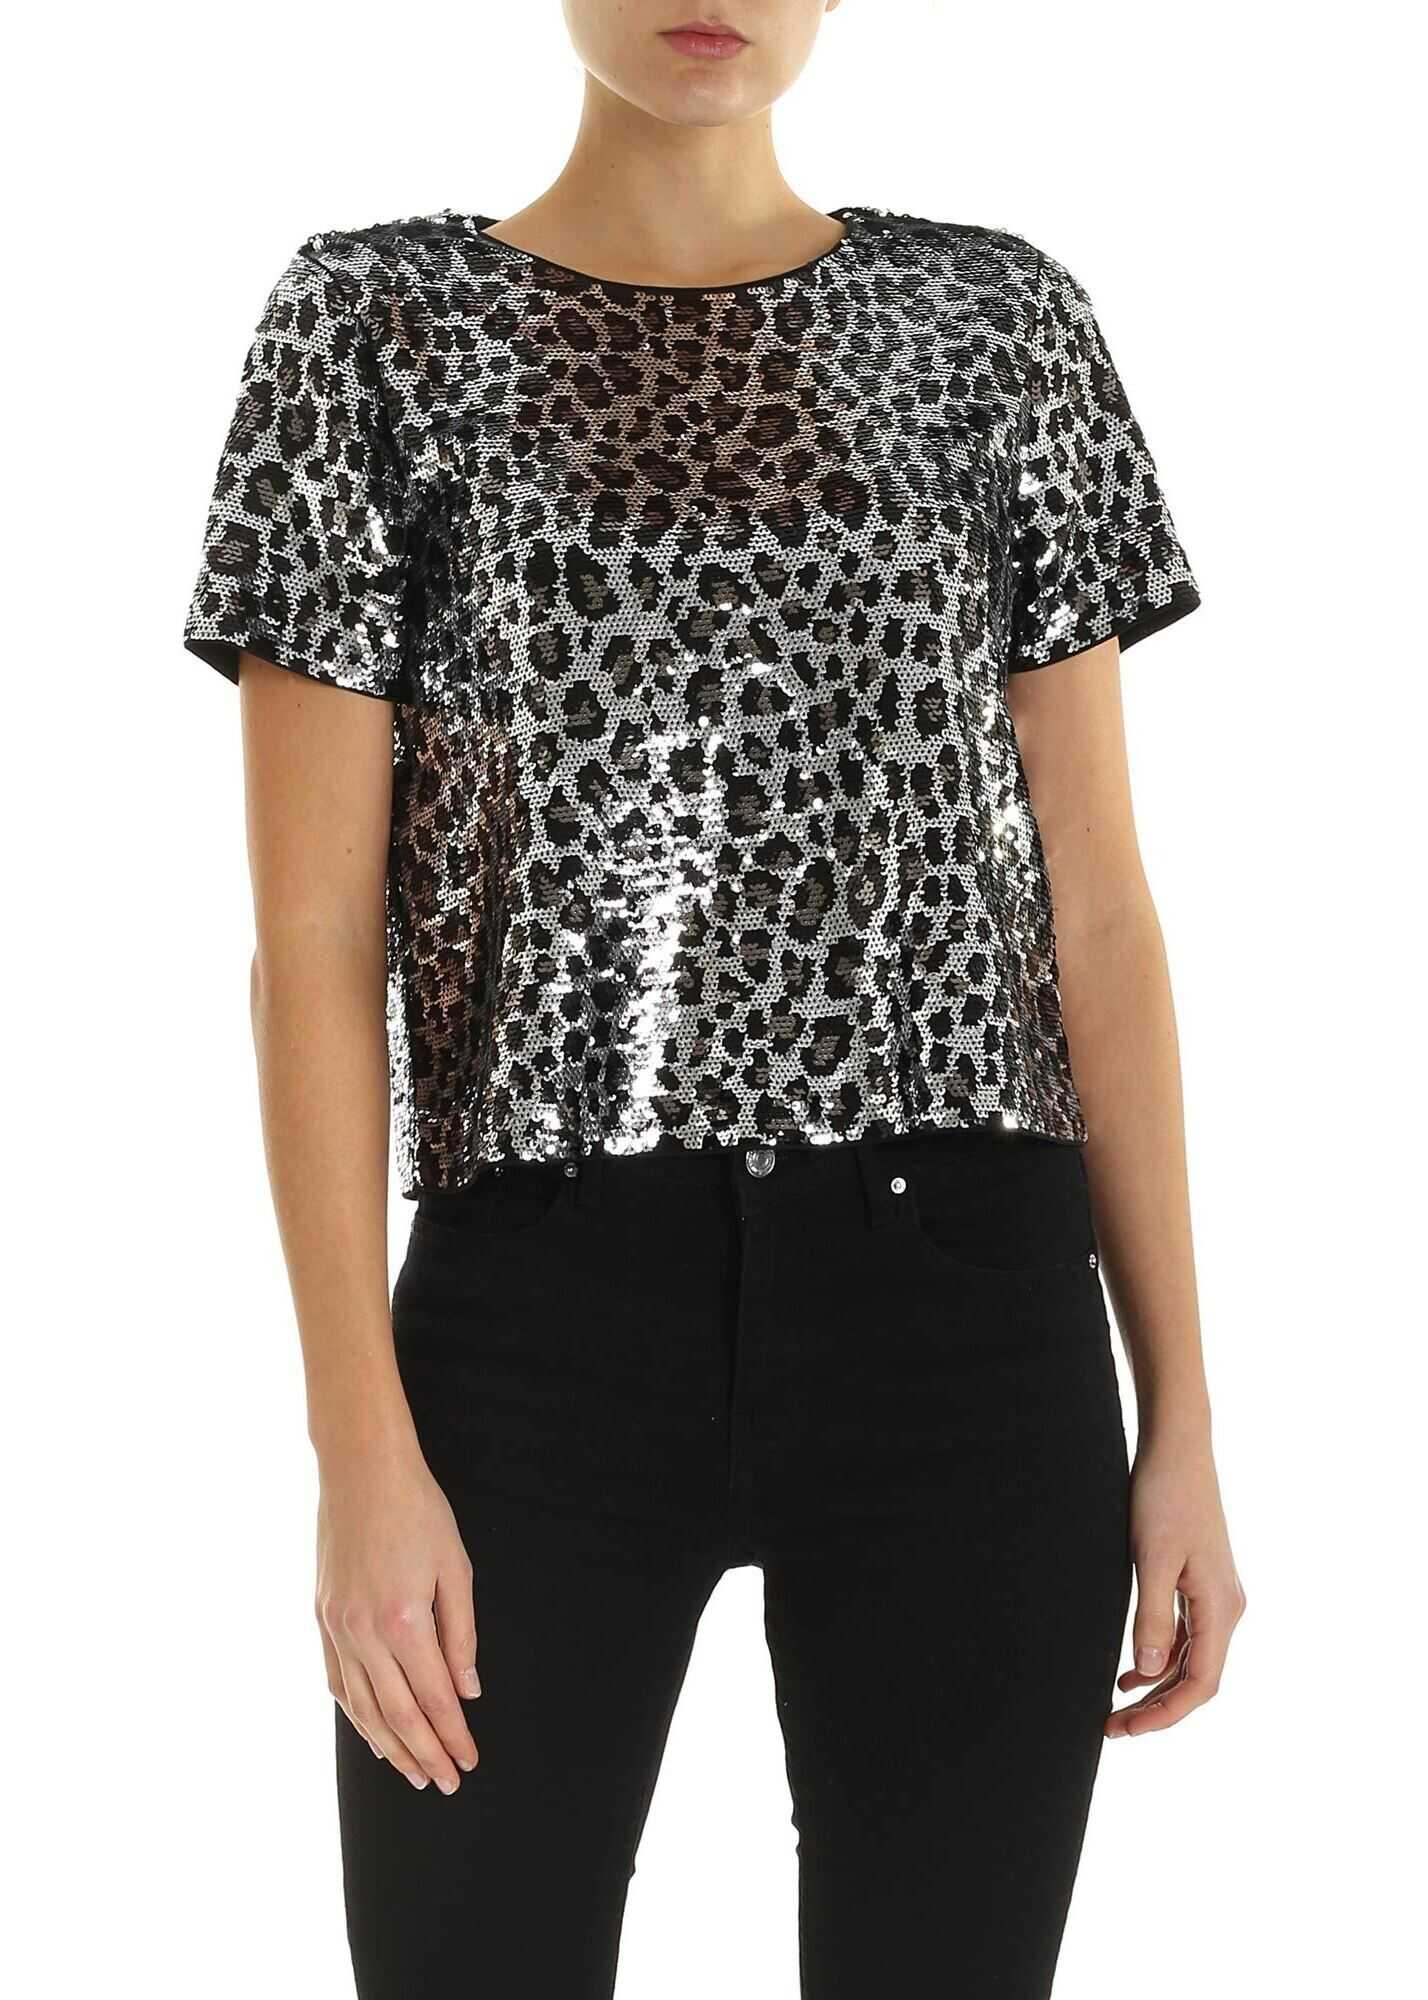 Michael Kors Sequinedwith Animal print